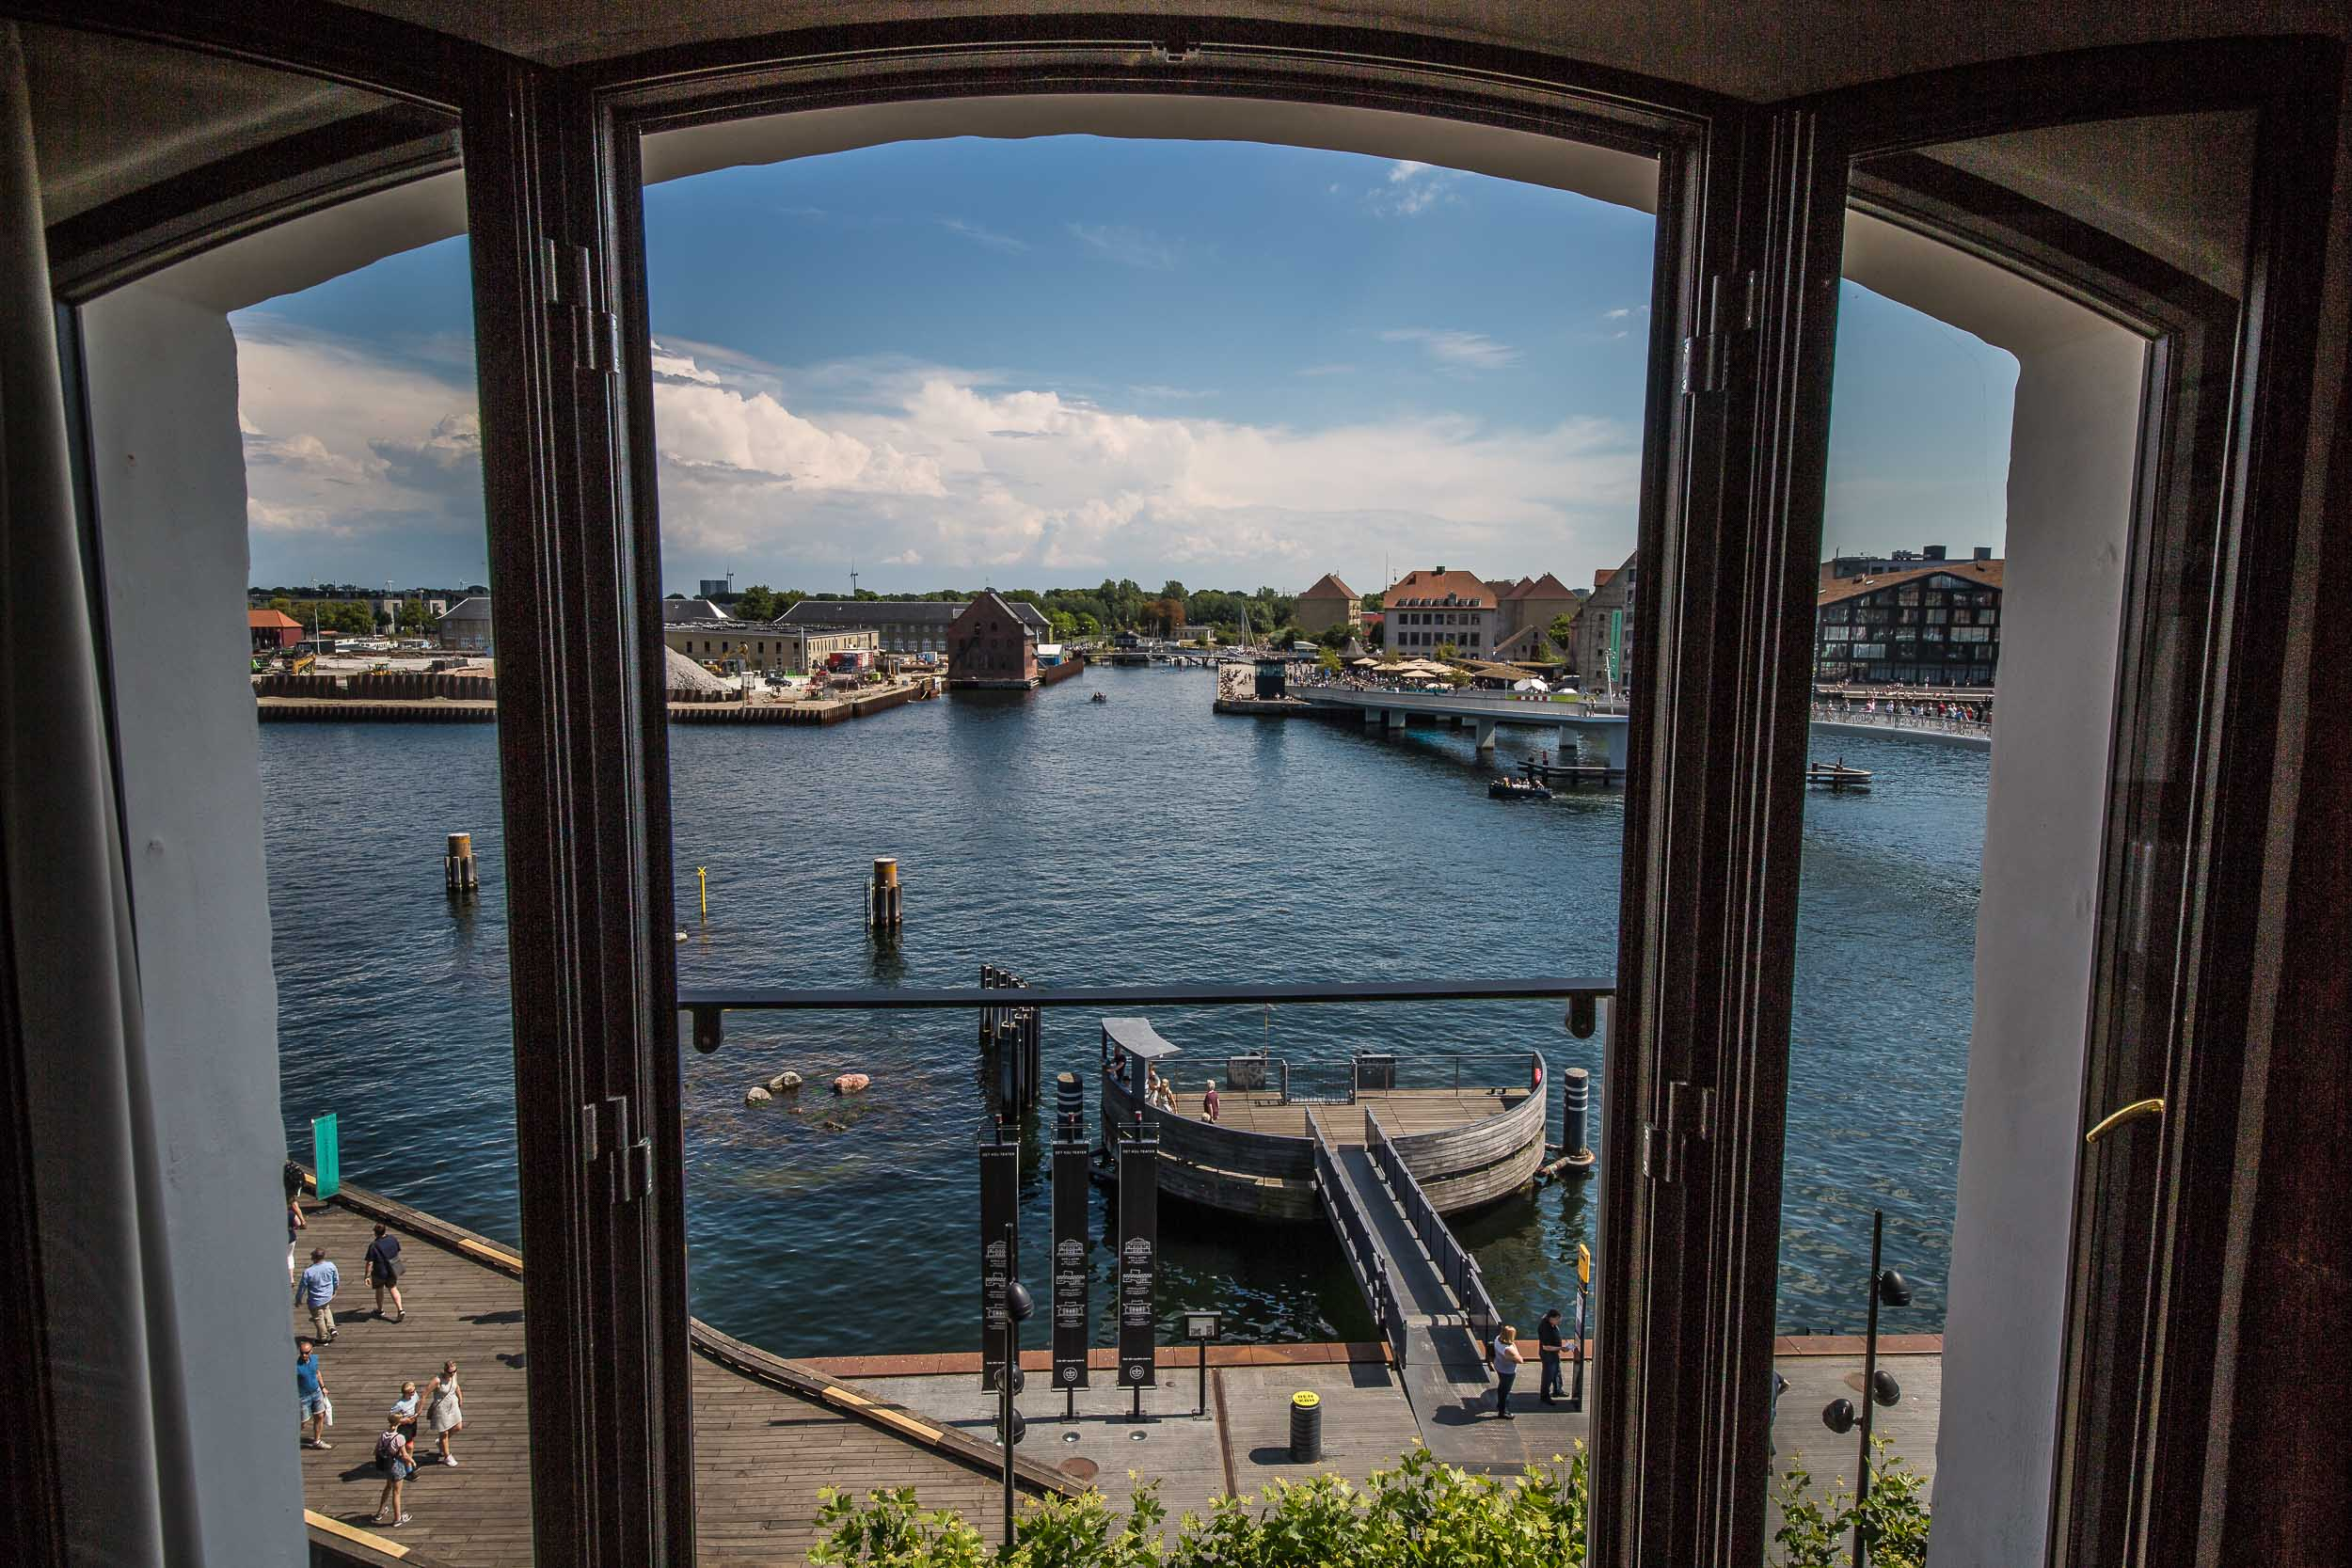 The View from the Executive Double Delux View Room, Hotel 71 Nyhavn, Copenhagen.jpg